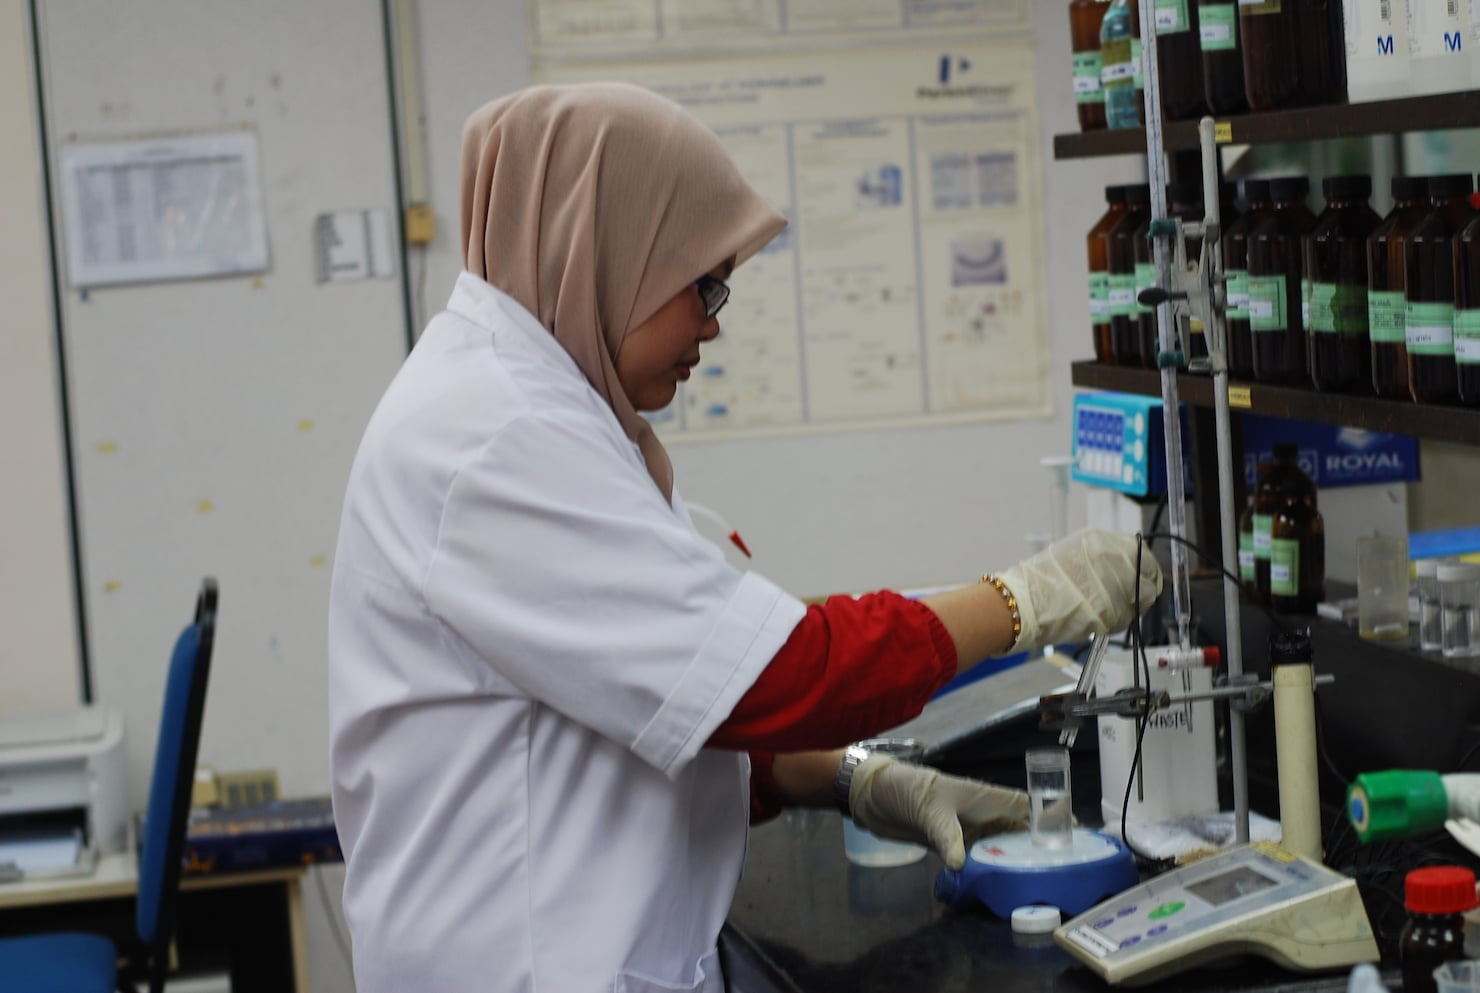 E S LABORATORIES (M) SDN  BHD  – A well-equipped testing